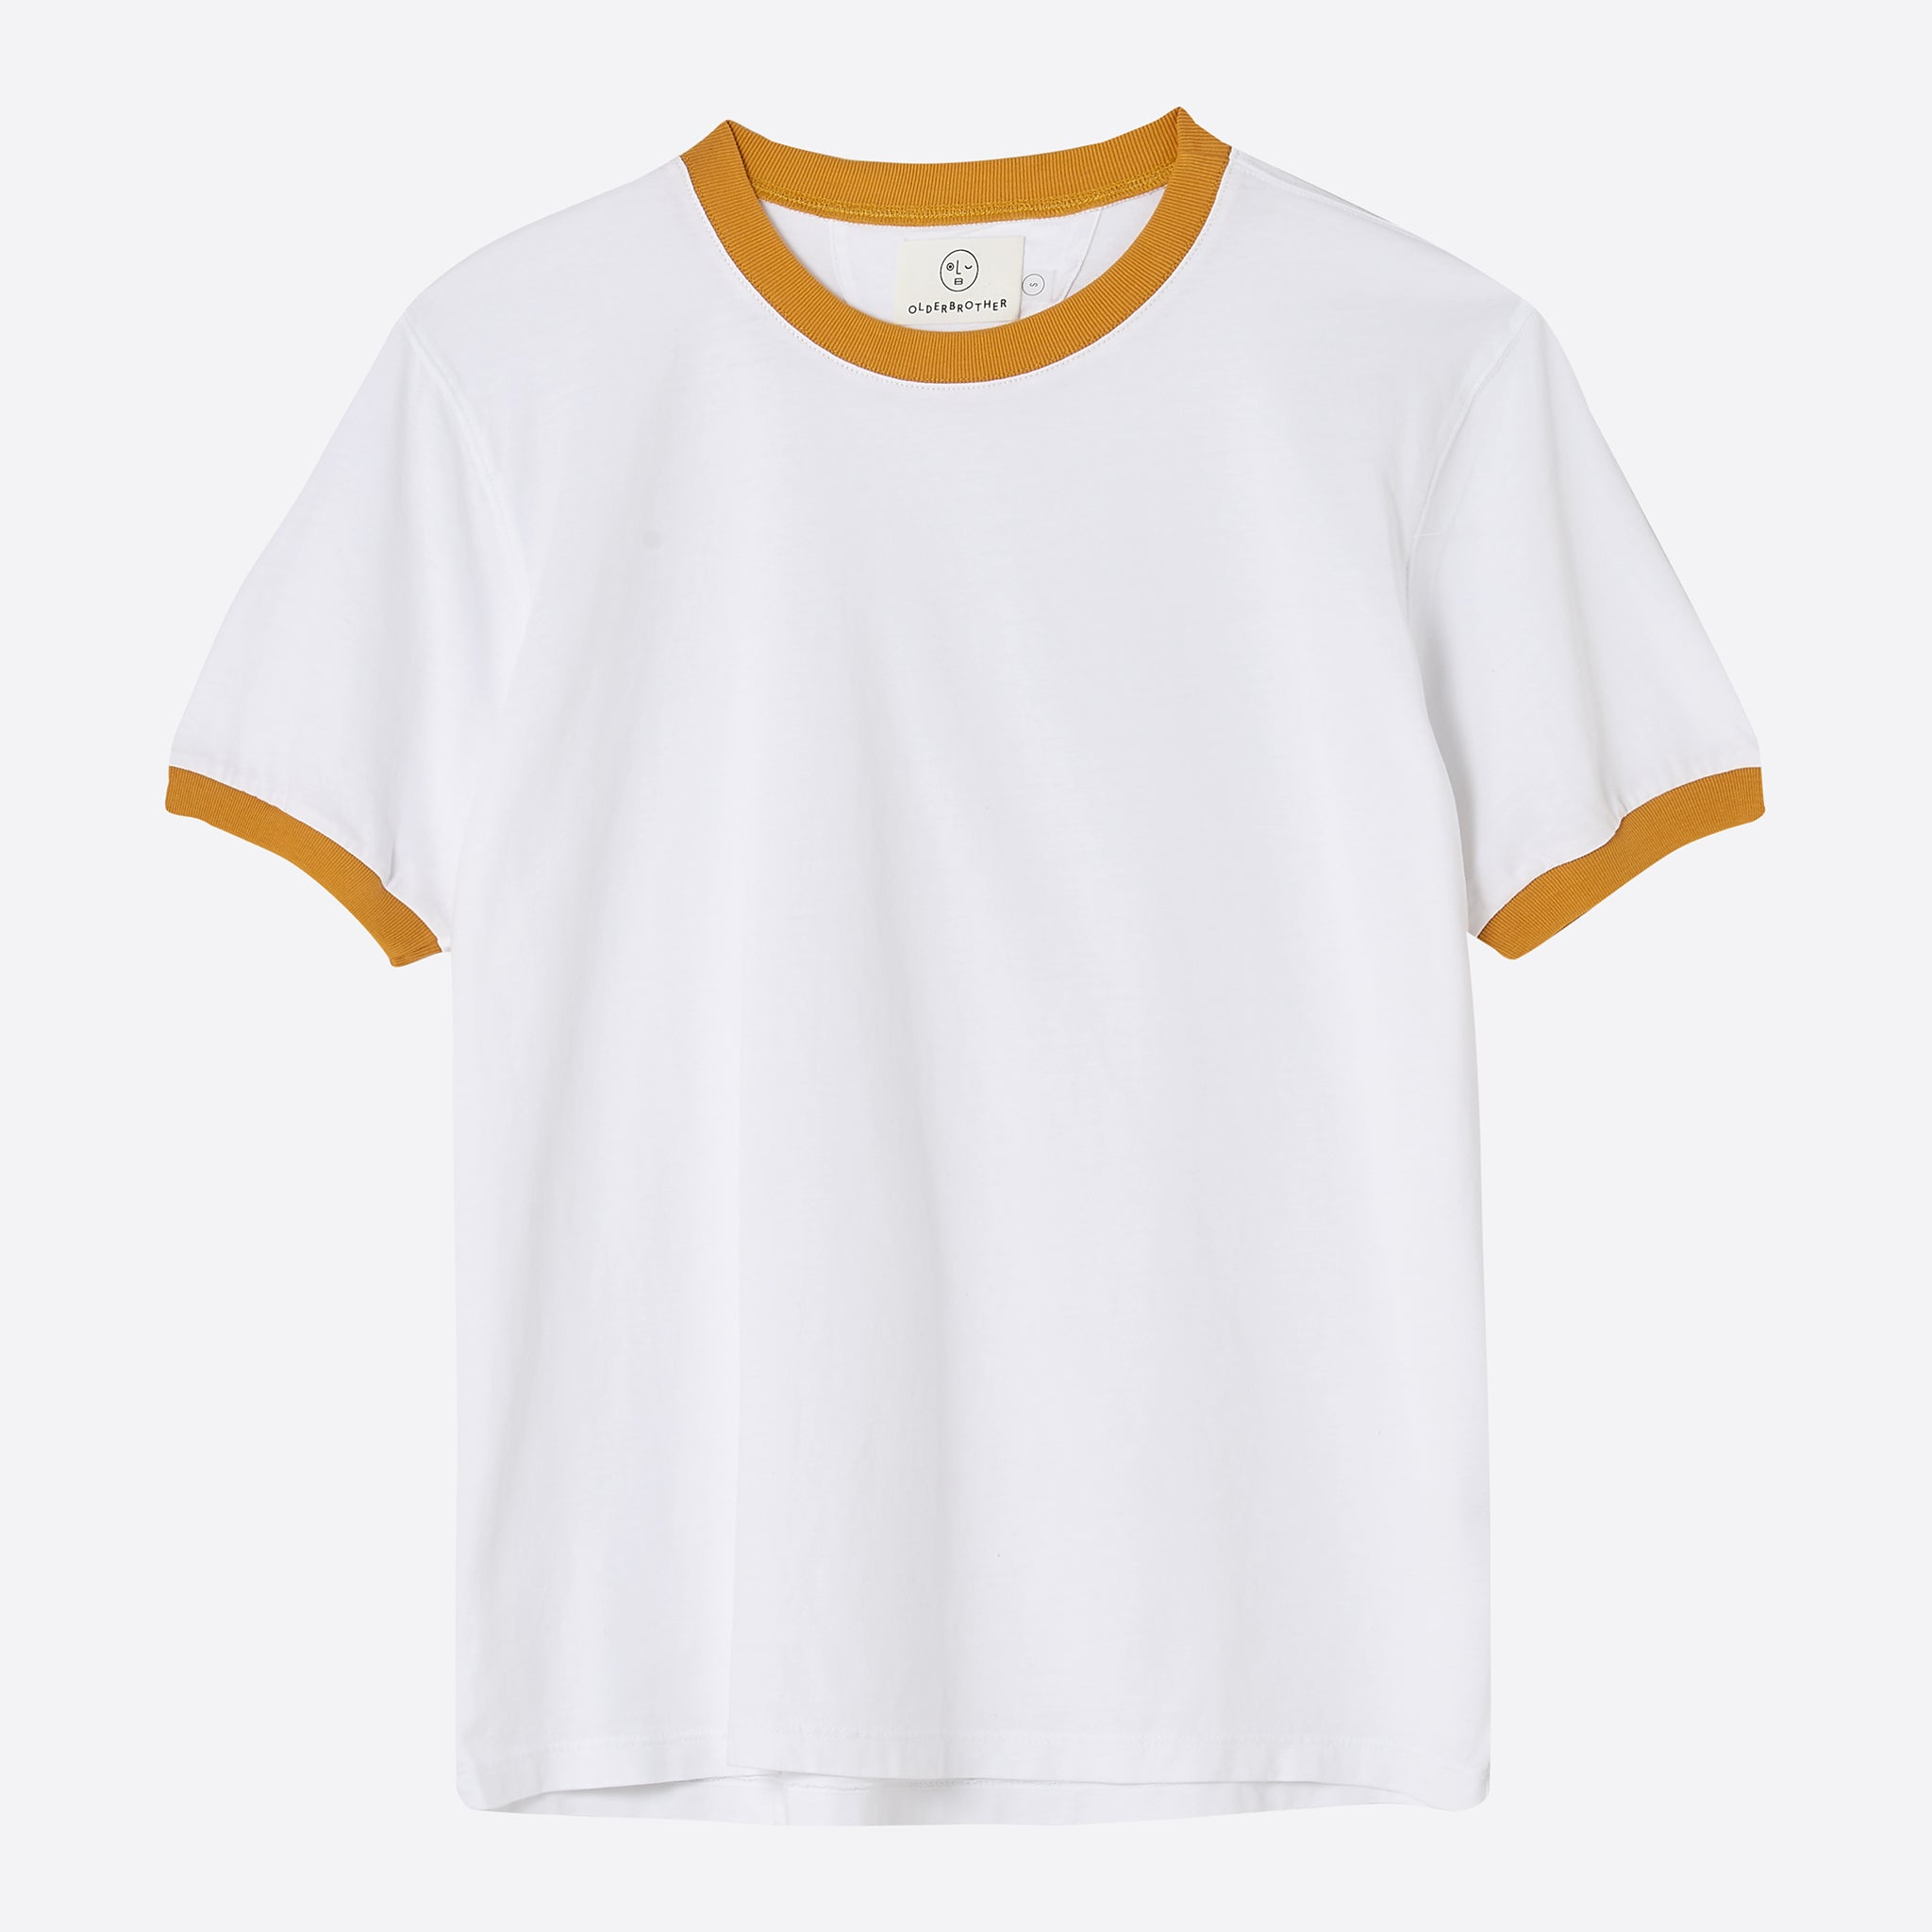 Older Brother Ringer Tee in Saffron